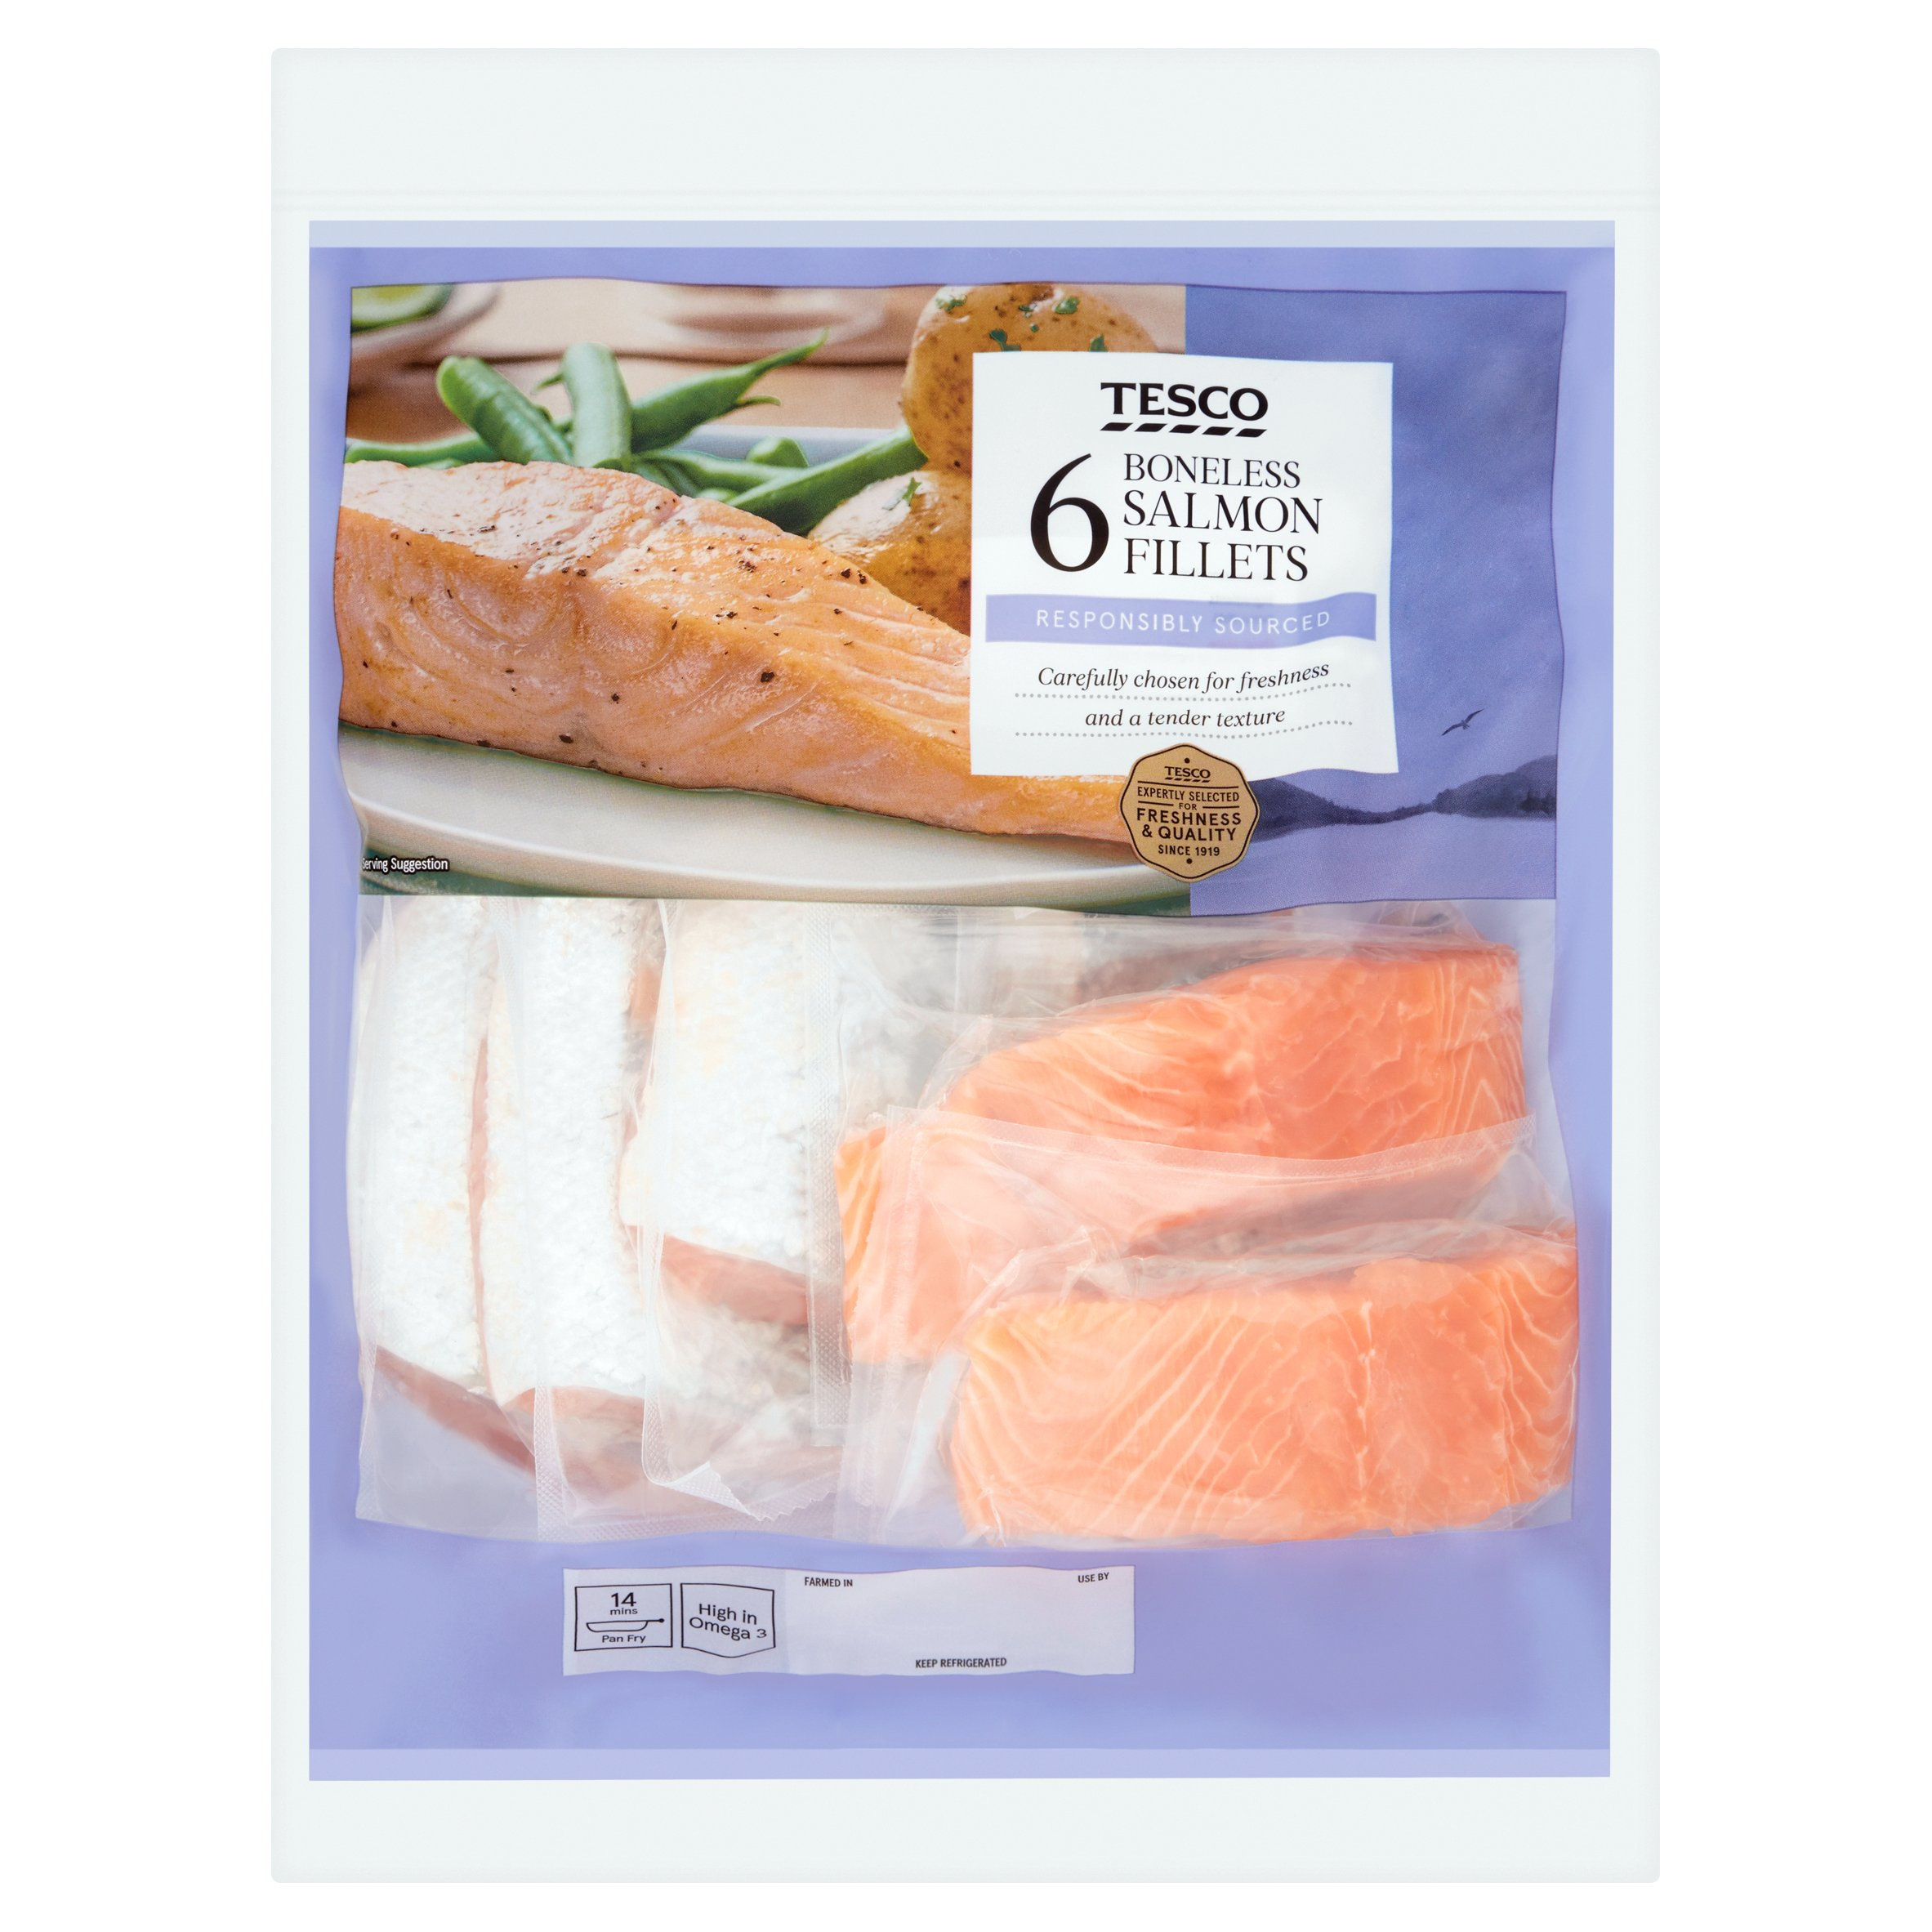 Tesco 6 Boneless Salmon Fillets 780G